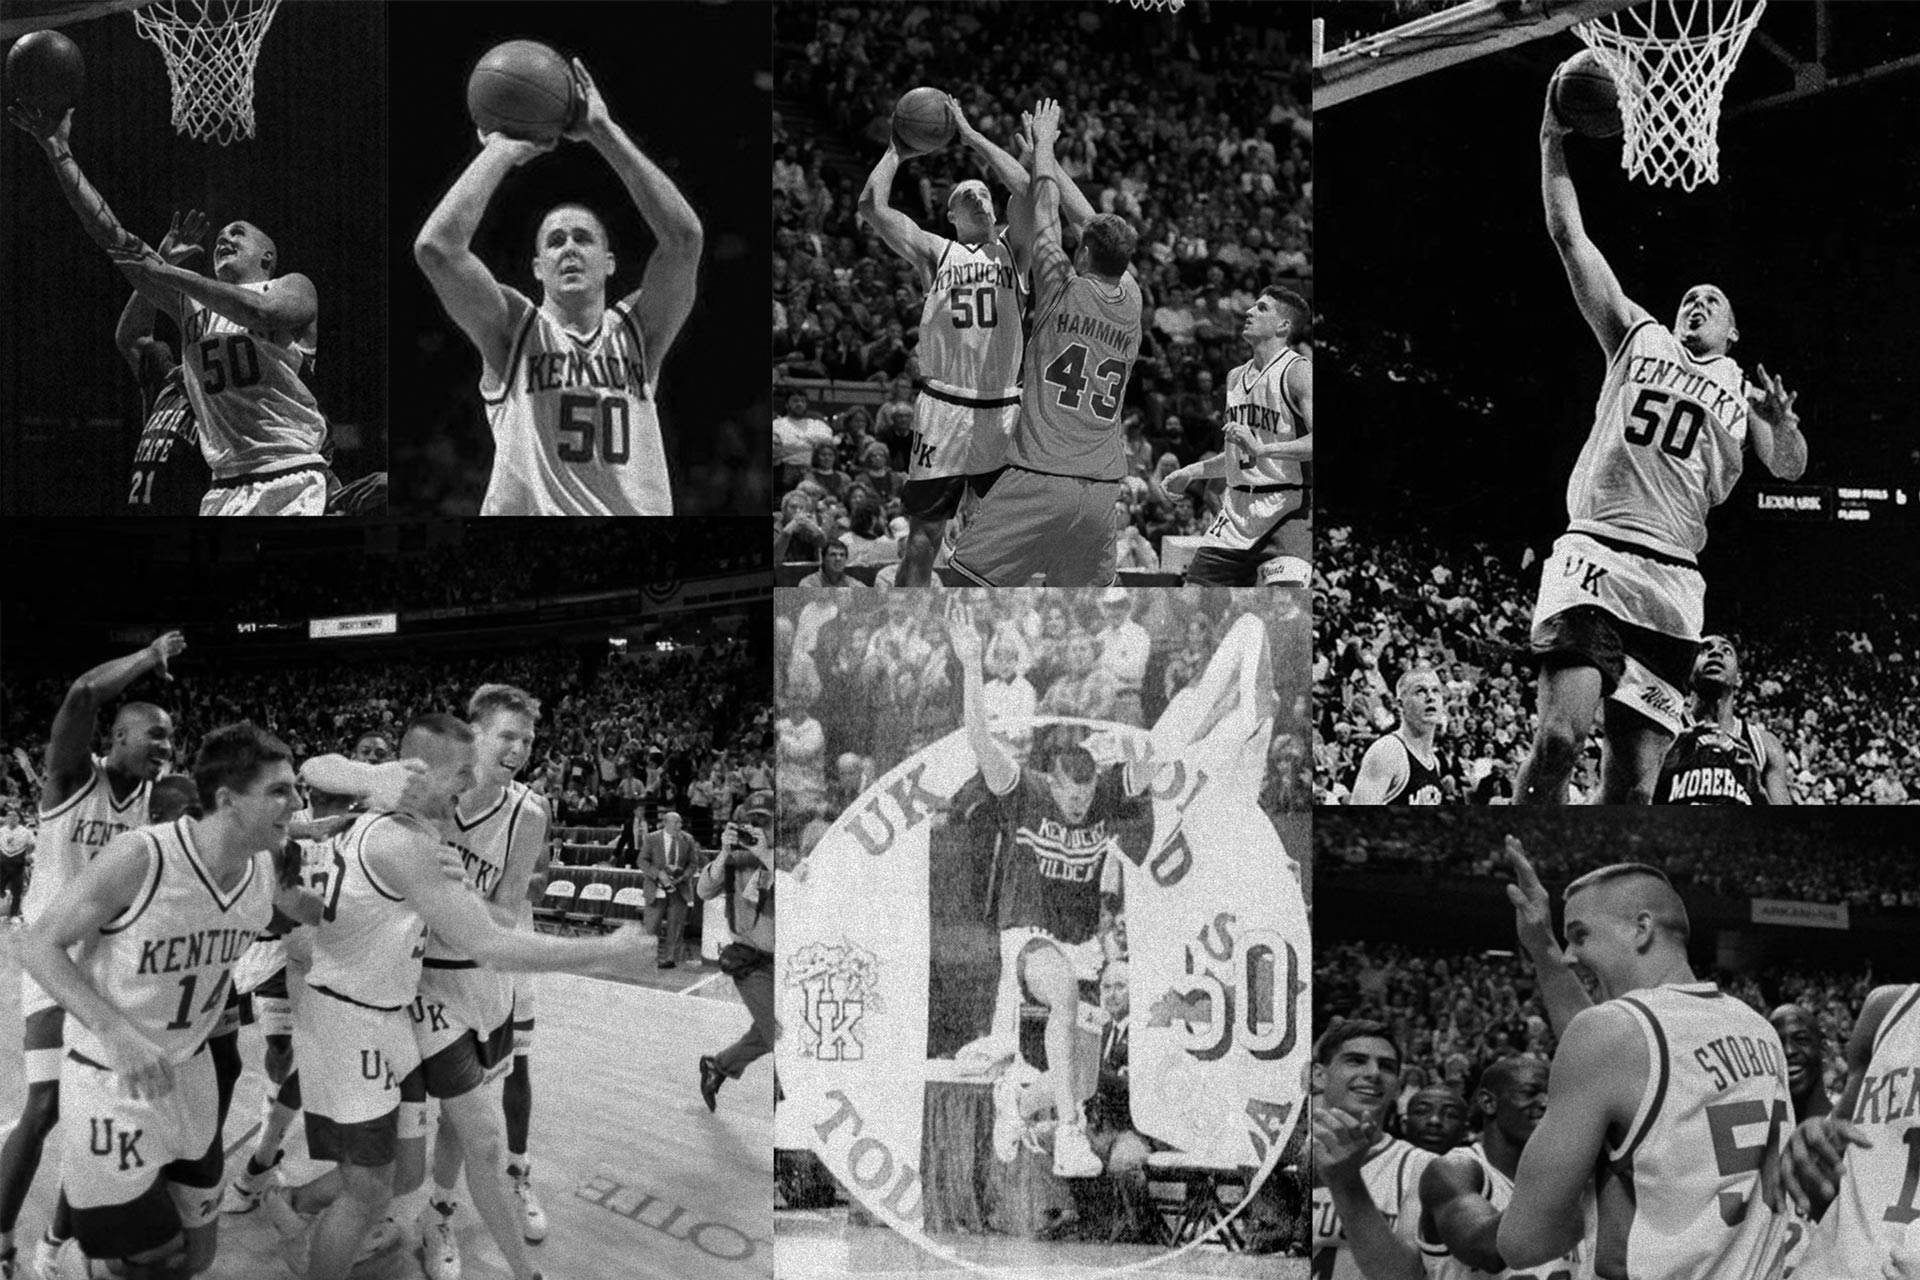 A black and white collage of photos of Todd playing basketball for the University of Kentucky.